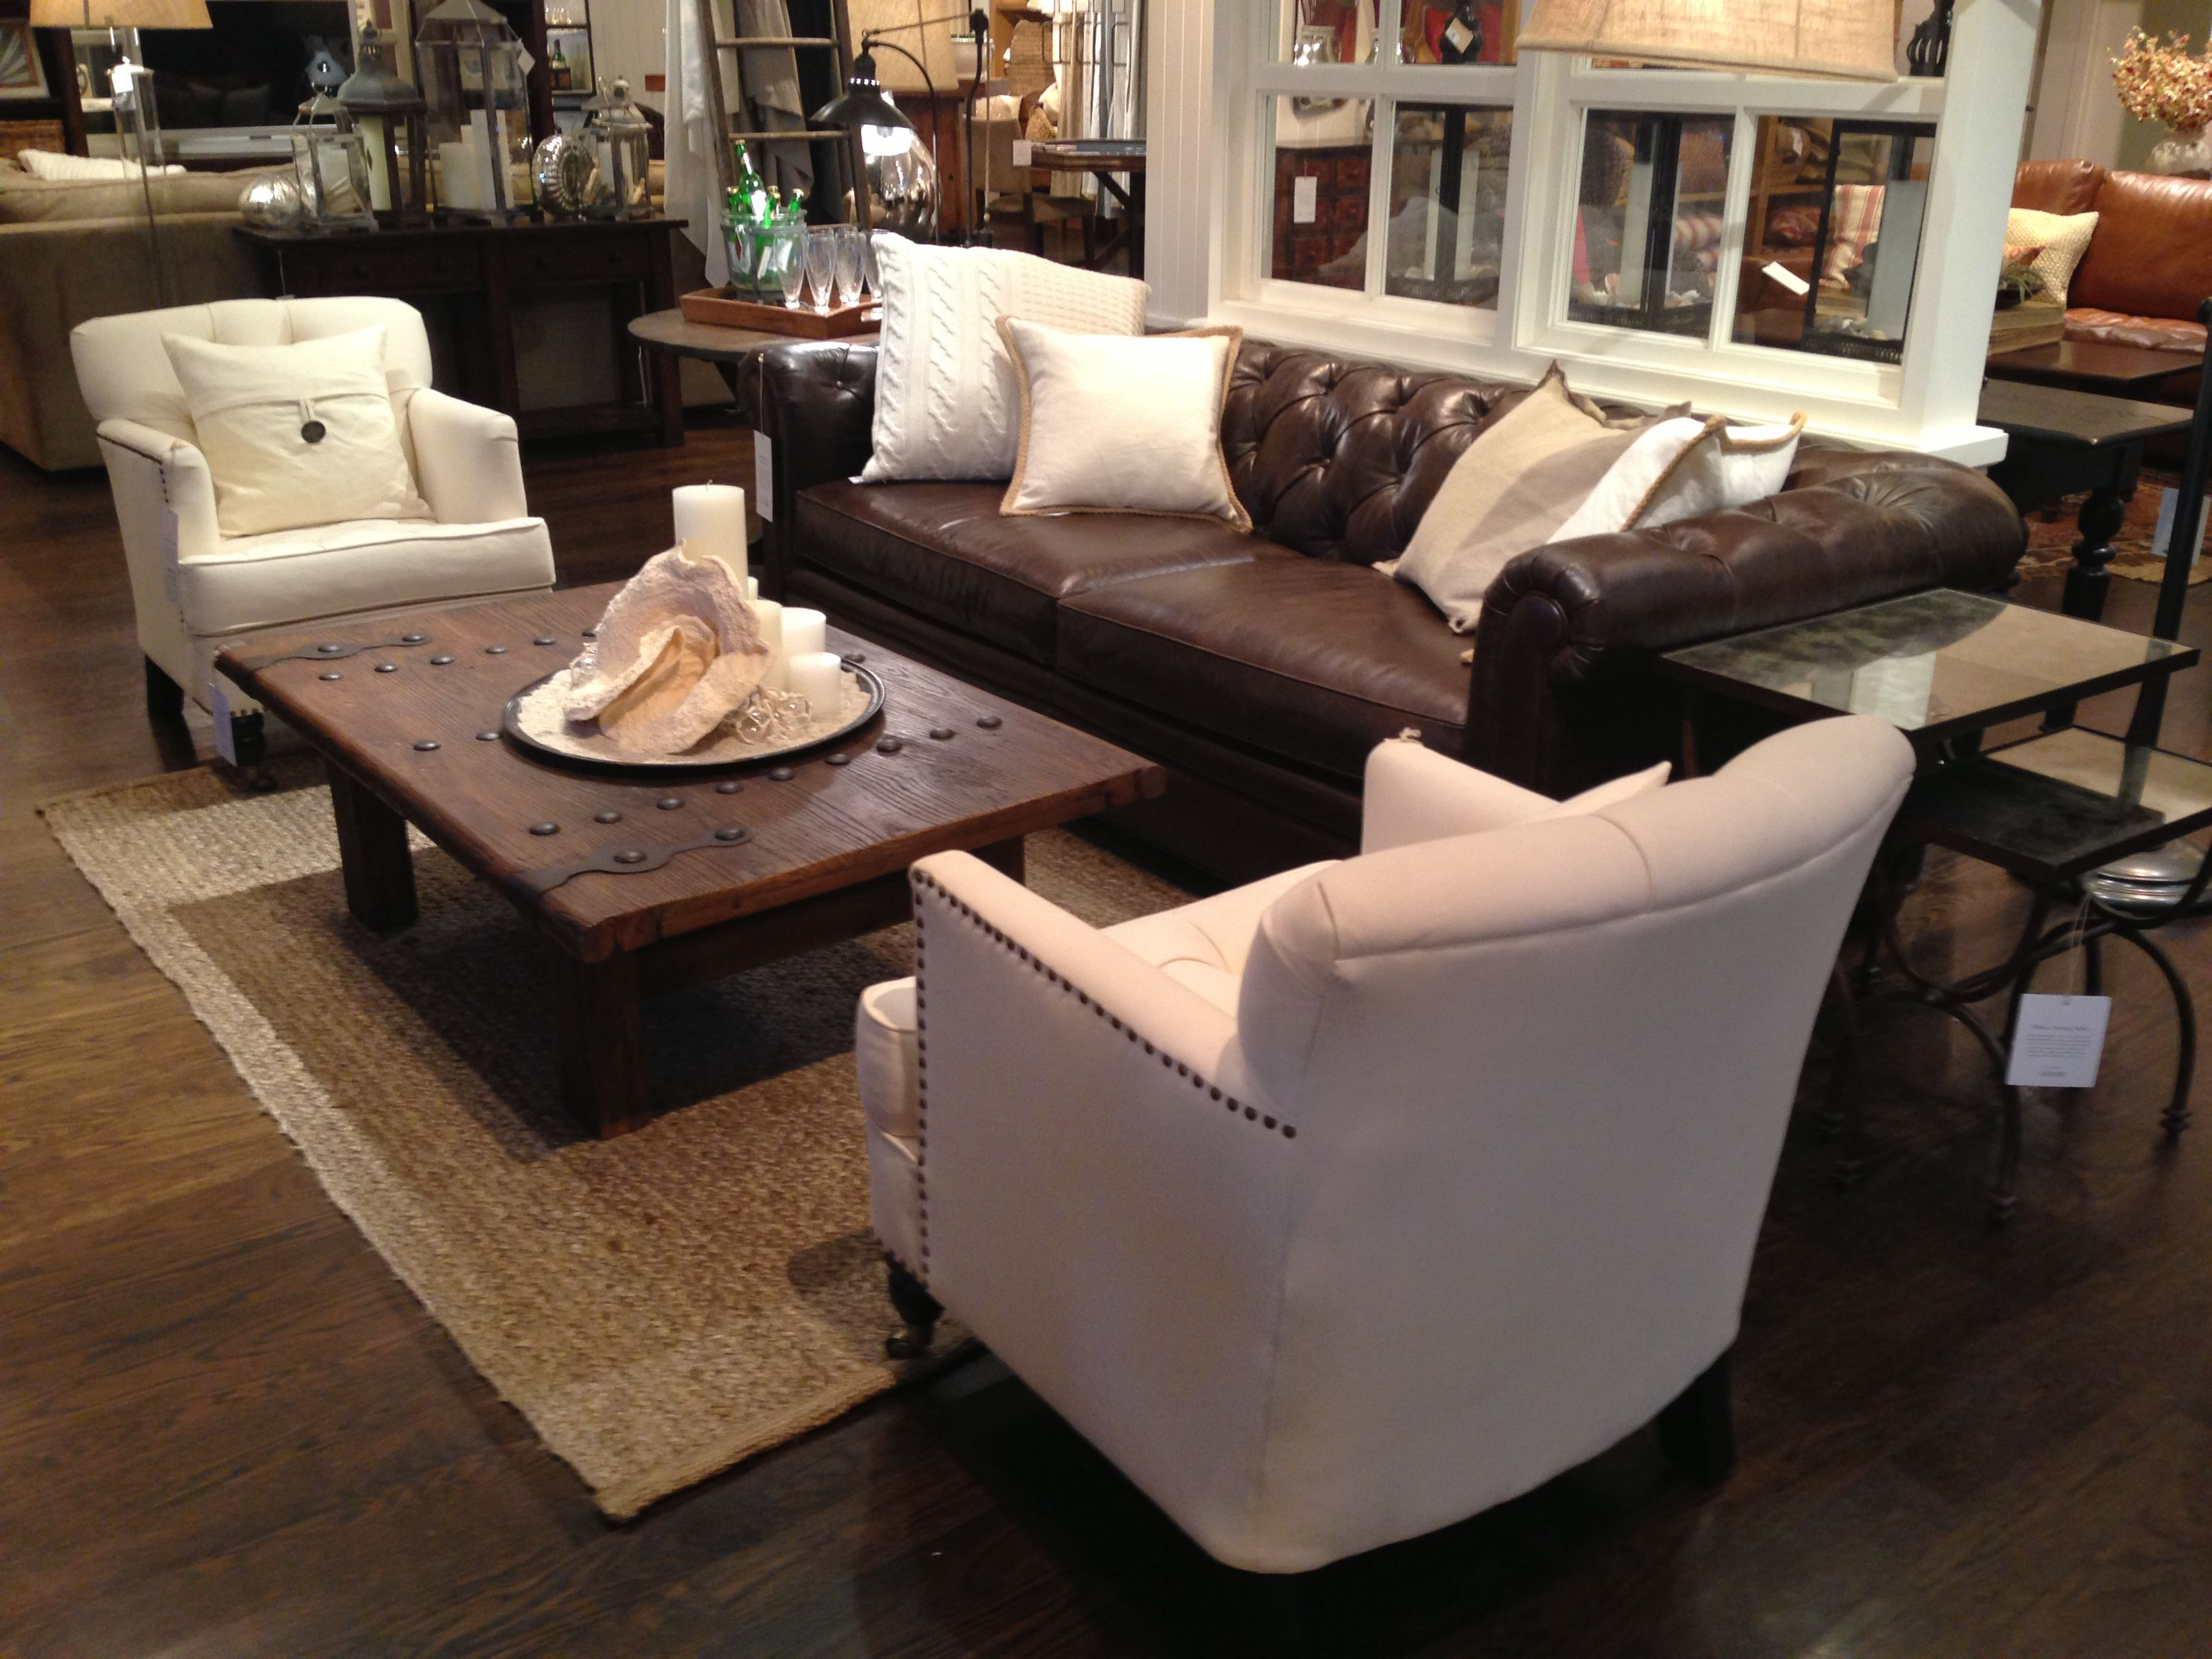 Living room furniture colors with our coffee table Get A 780 Credit ...